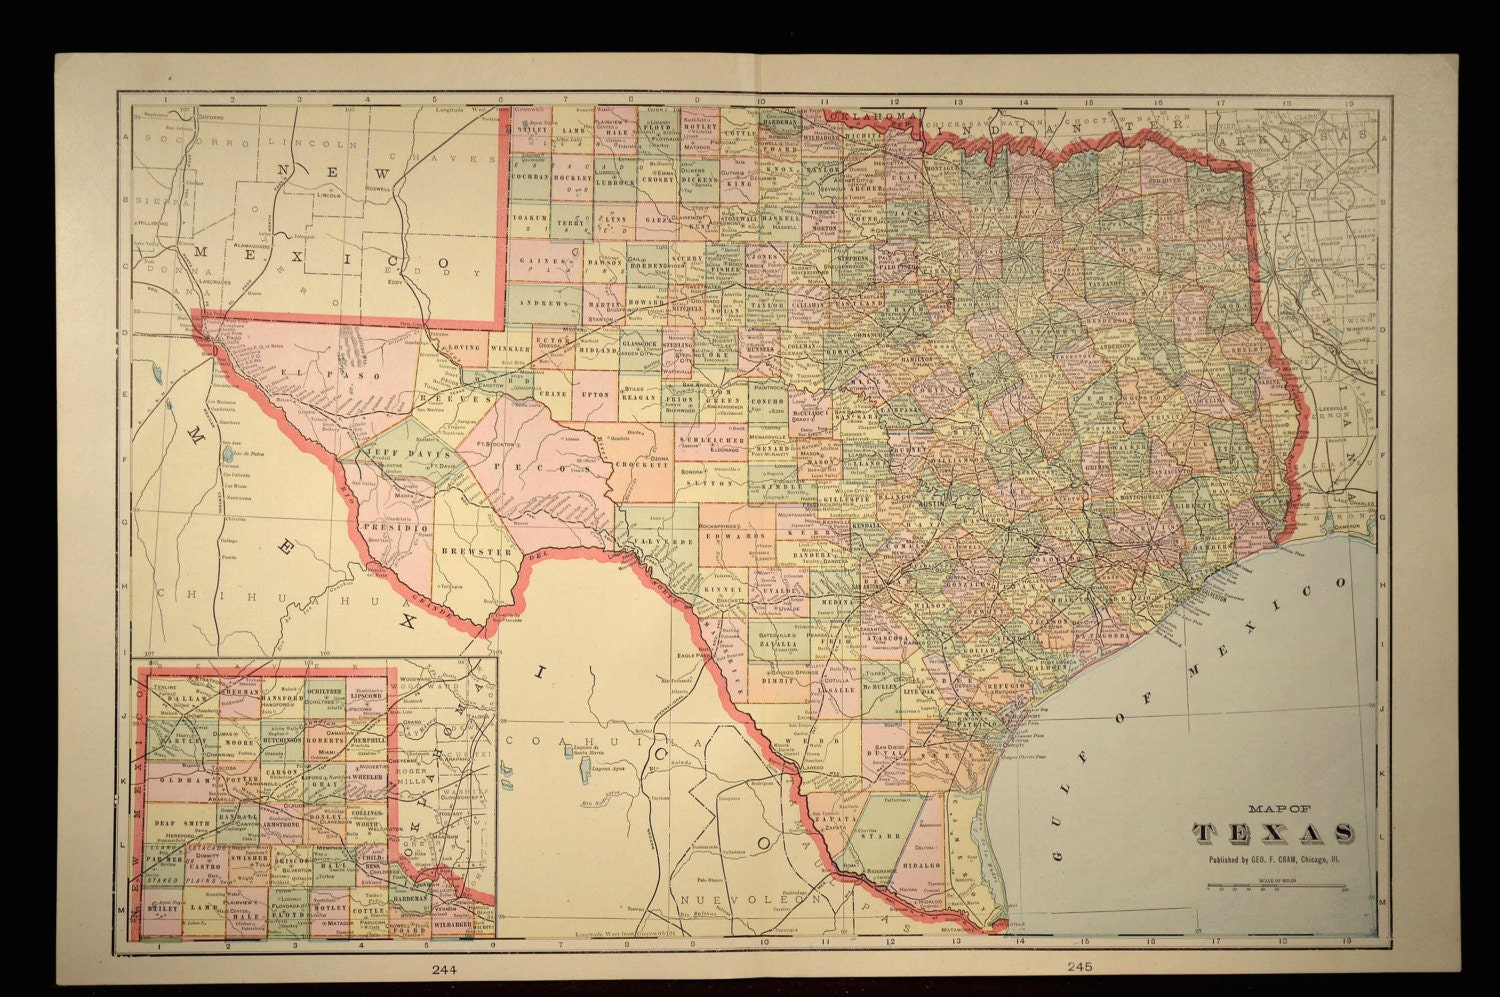 Buy Old Dallas Texas Map Vintage Historical Map Antique: Texas Map Texas Antique LARGE Early 1900s By MapsBooksEphemera